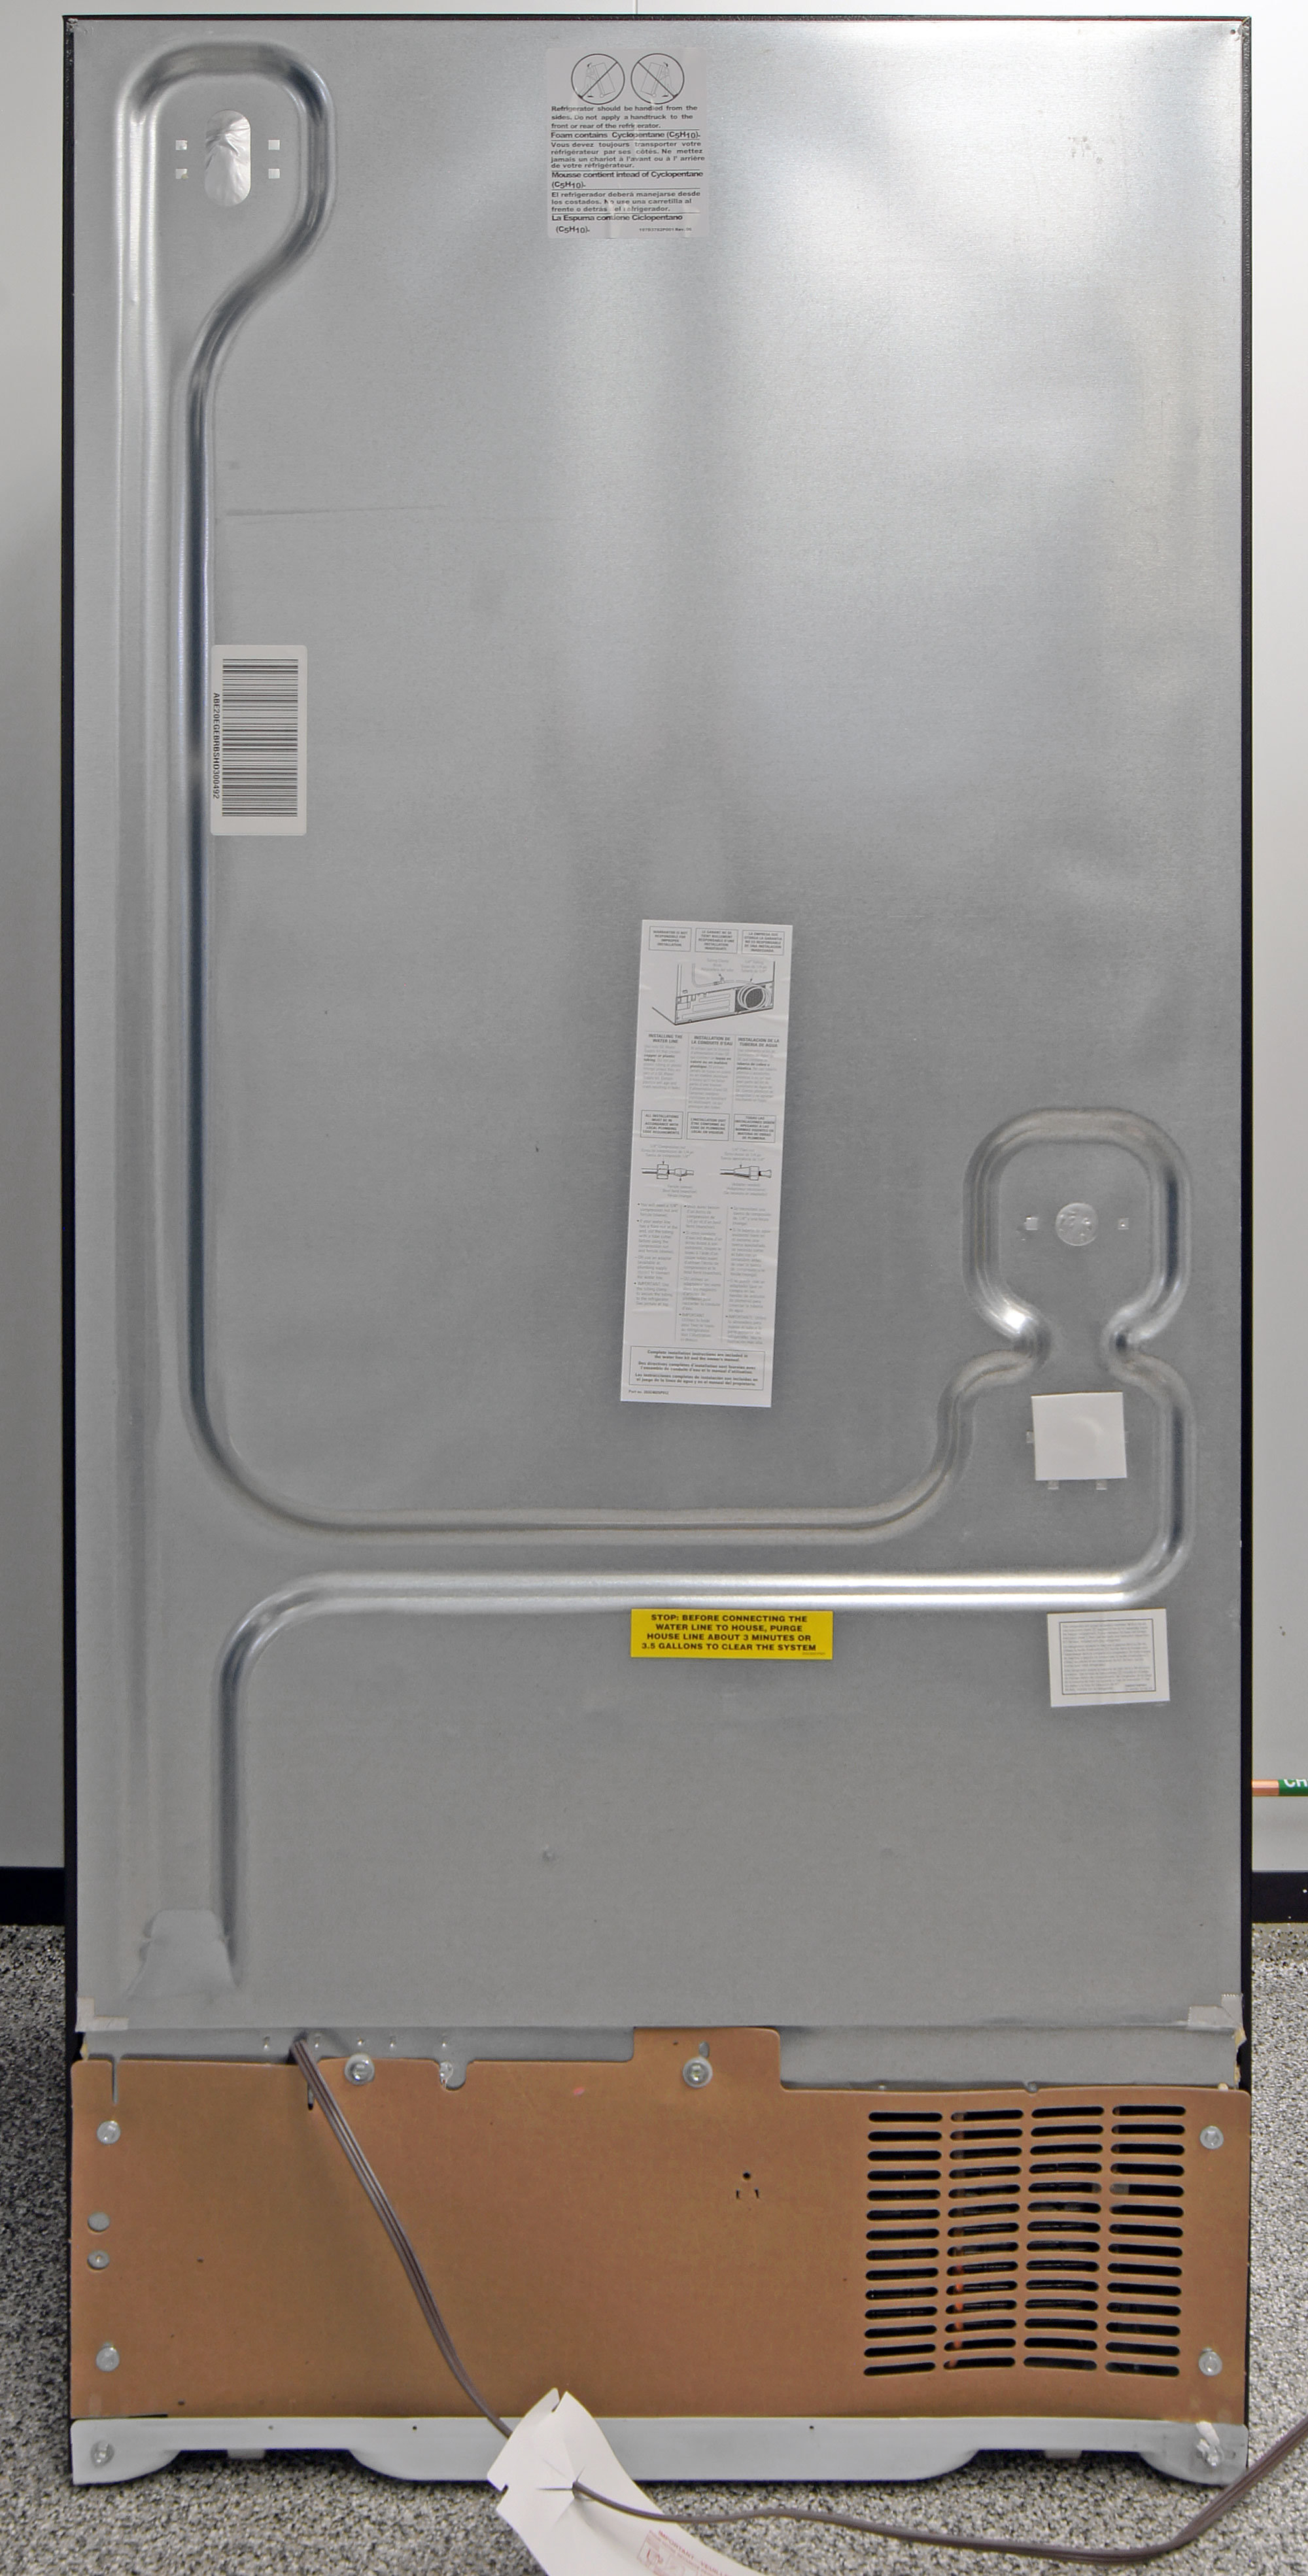 Without a water hookup, the only item of interest in back of the GE Artistry ABE20EGES is the power cable.